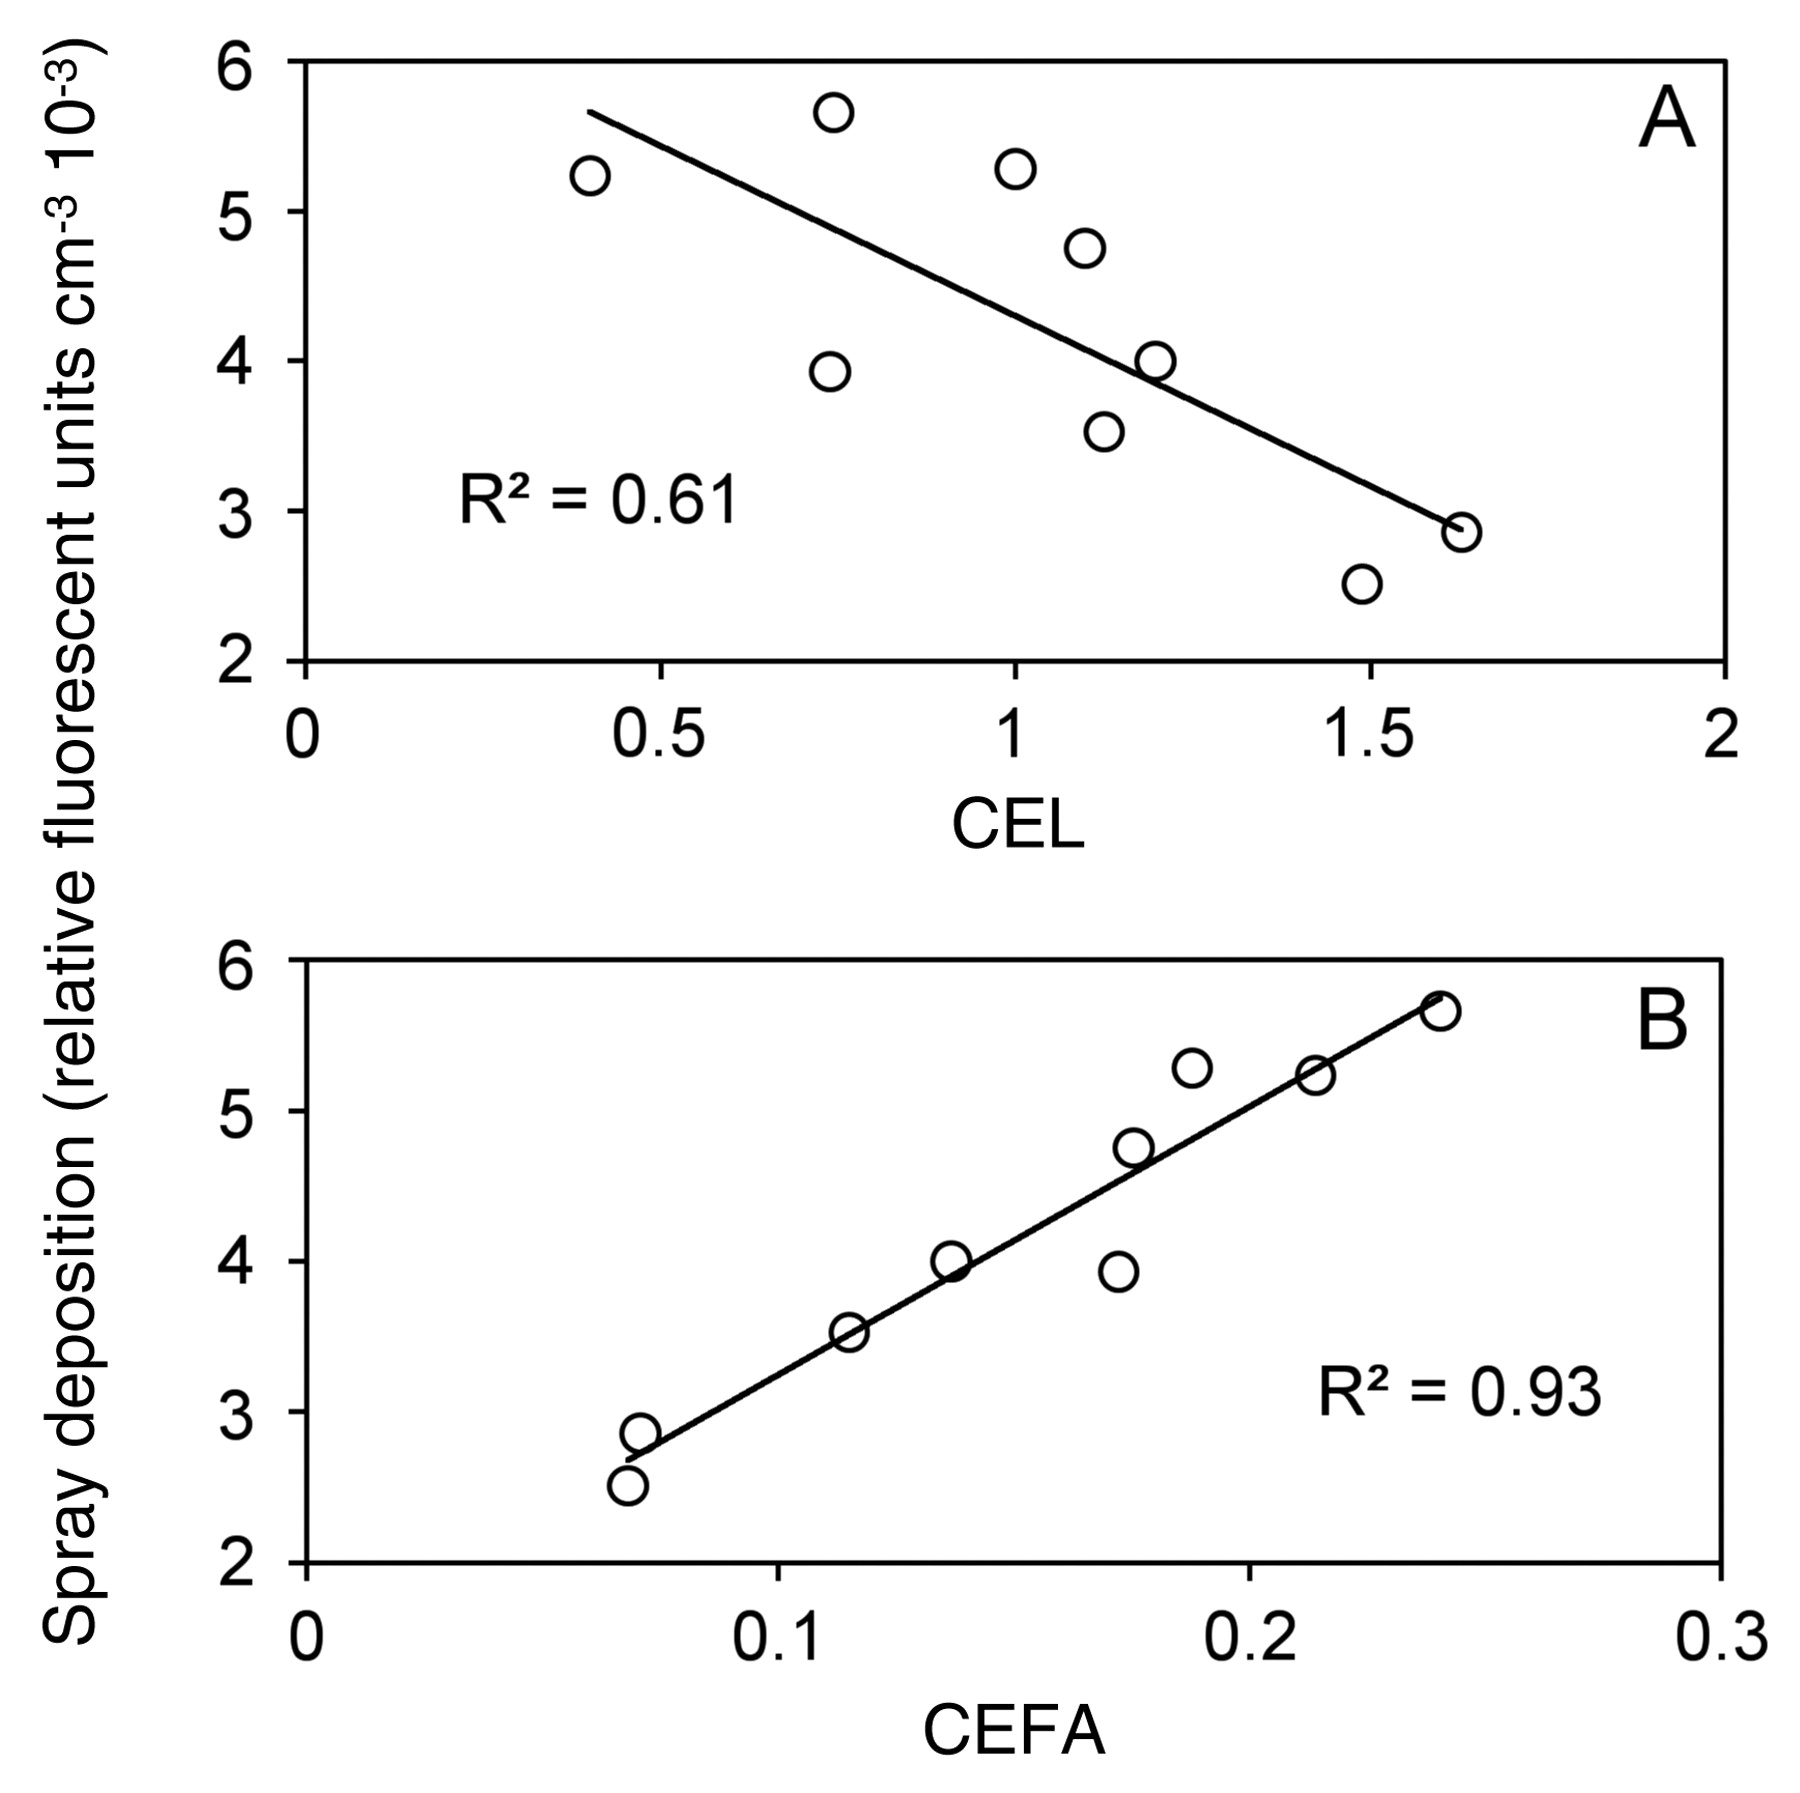 Powdery Mildew Severity as a Function of Canopy Density: Associated